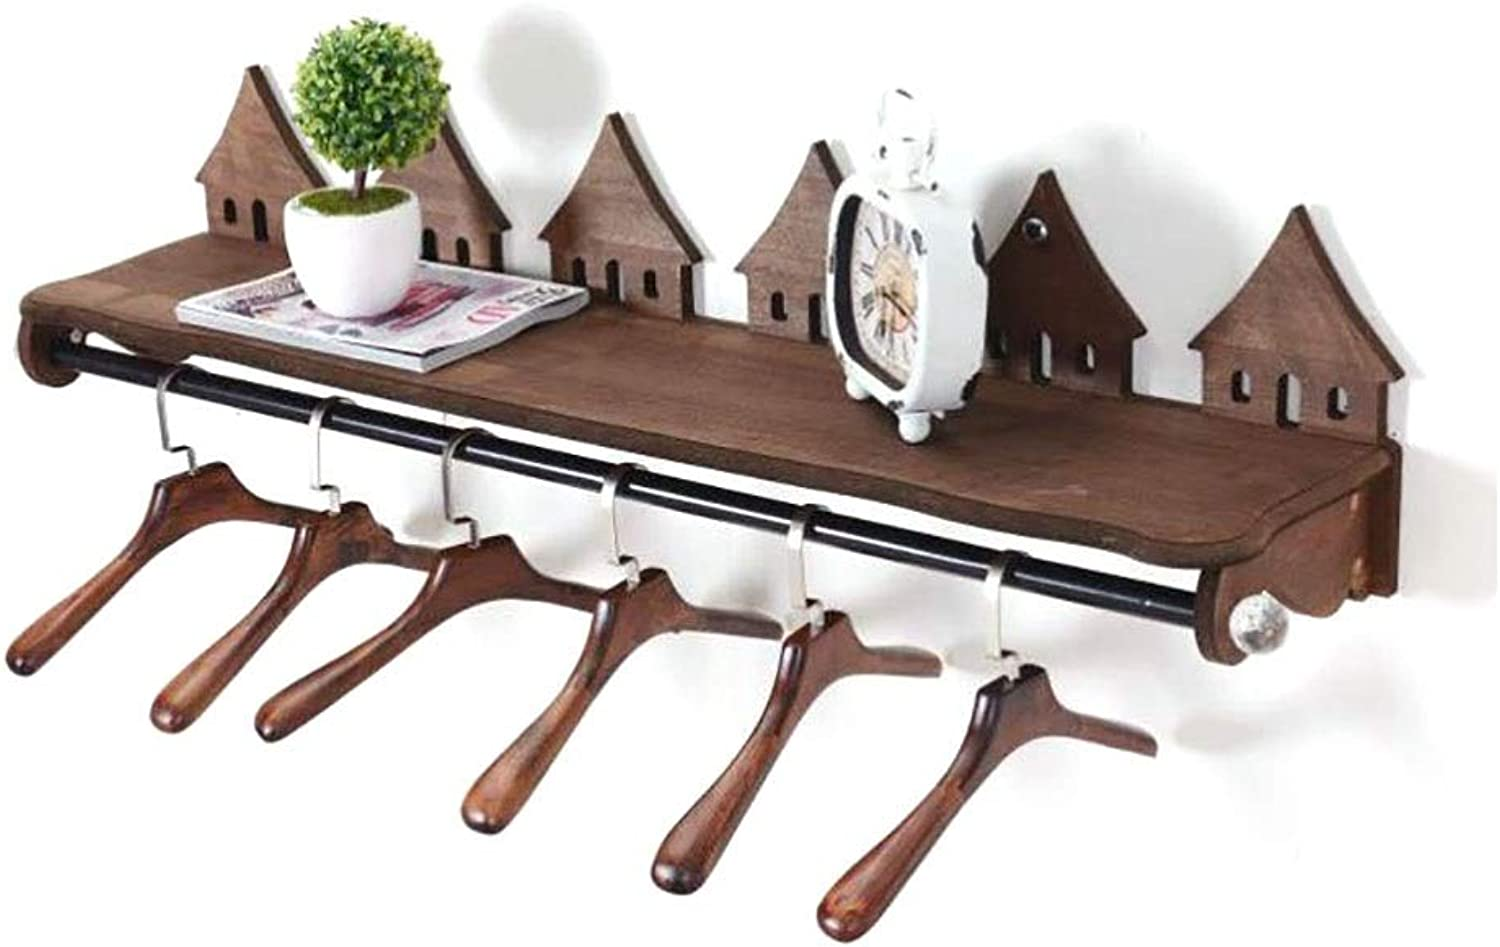 Coat Rack Clothing Store Display Stand Wooden Coat Rack On The Wall Side Side Hanger (Size   80cm25cm27.5cm)